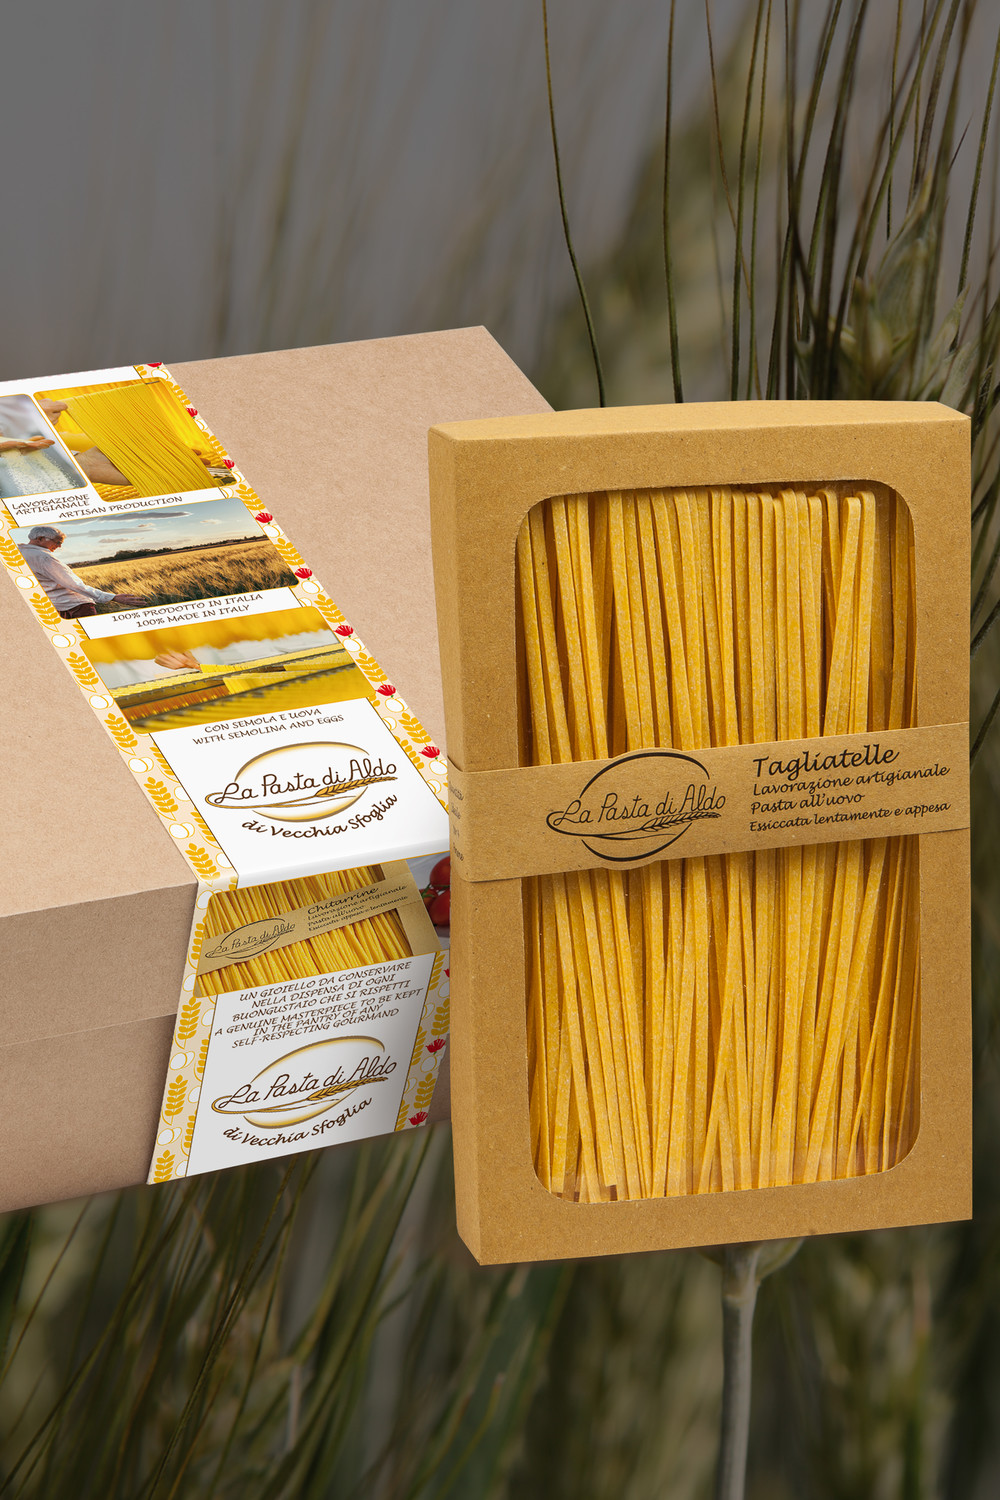 Acquisto on line di pasta all'uovo